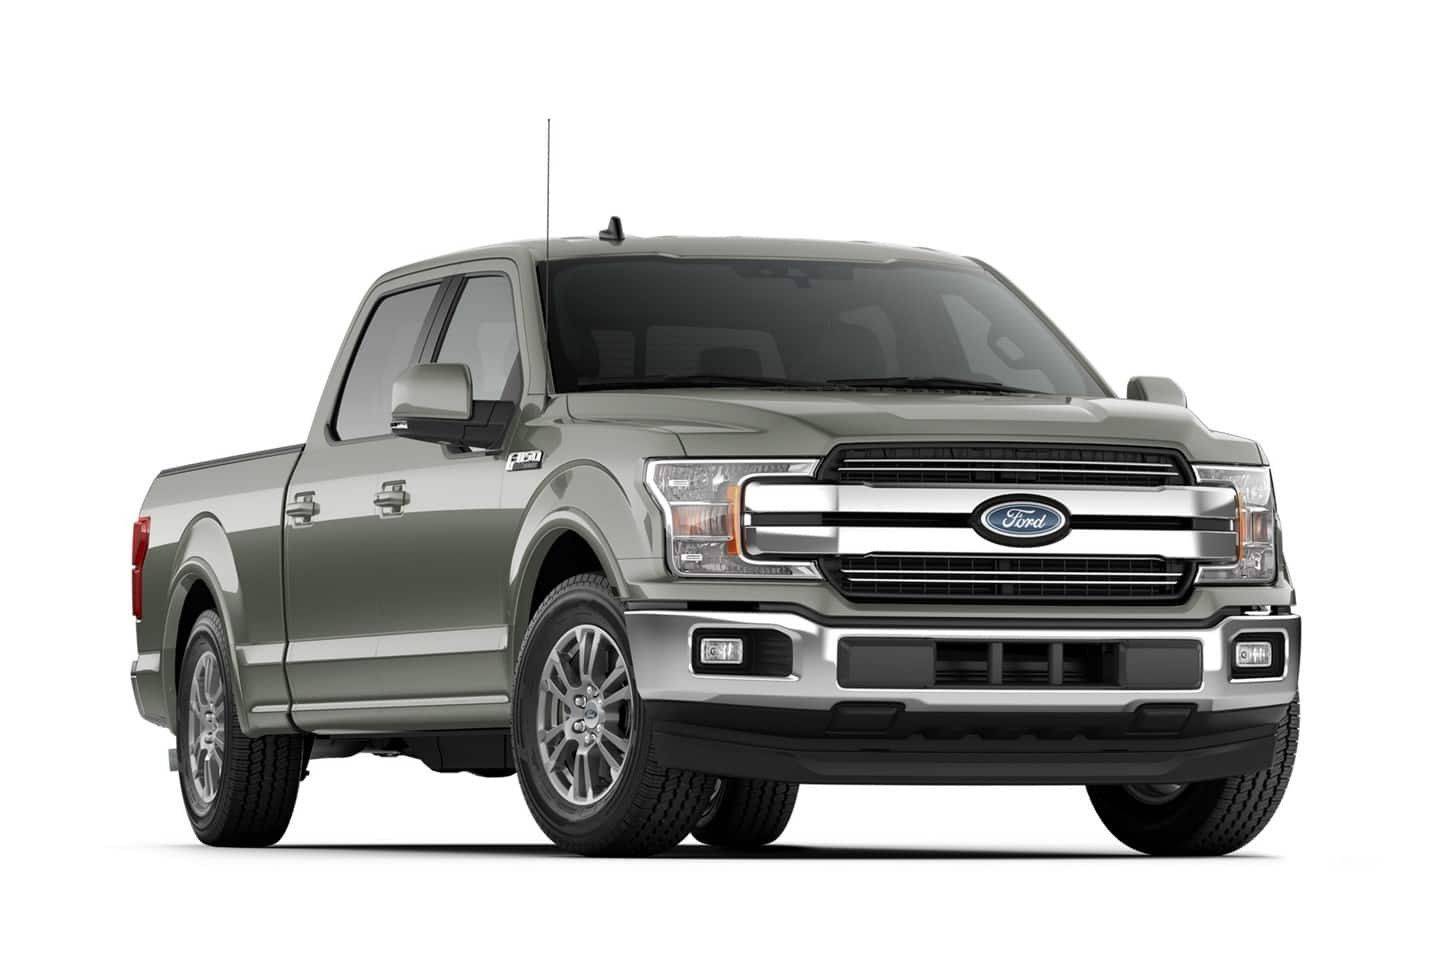 2020 Ford Xlt F150 Price And Release Date 2019 Ford Ford